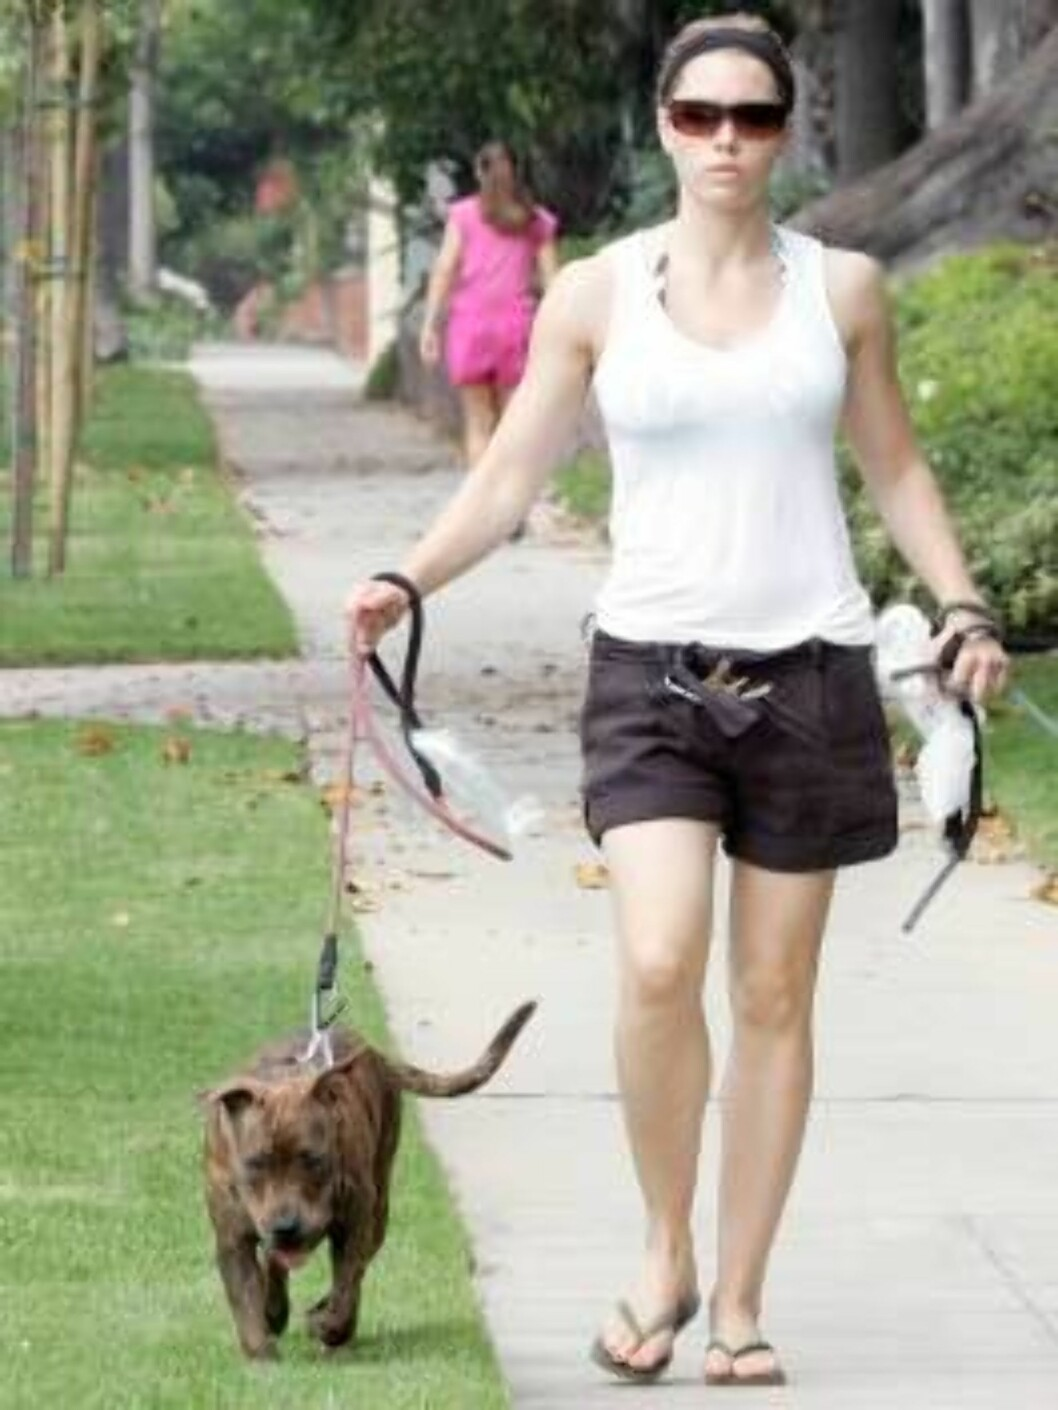 7th Heaven Jessica Biel walks her two dogs in Brentwood june 20, 2006 Foto: All Over Press